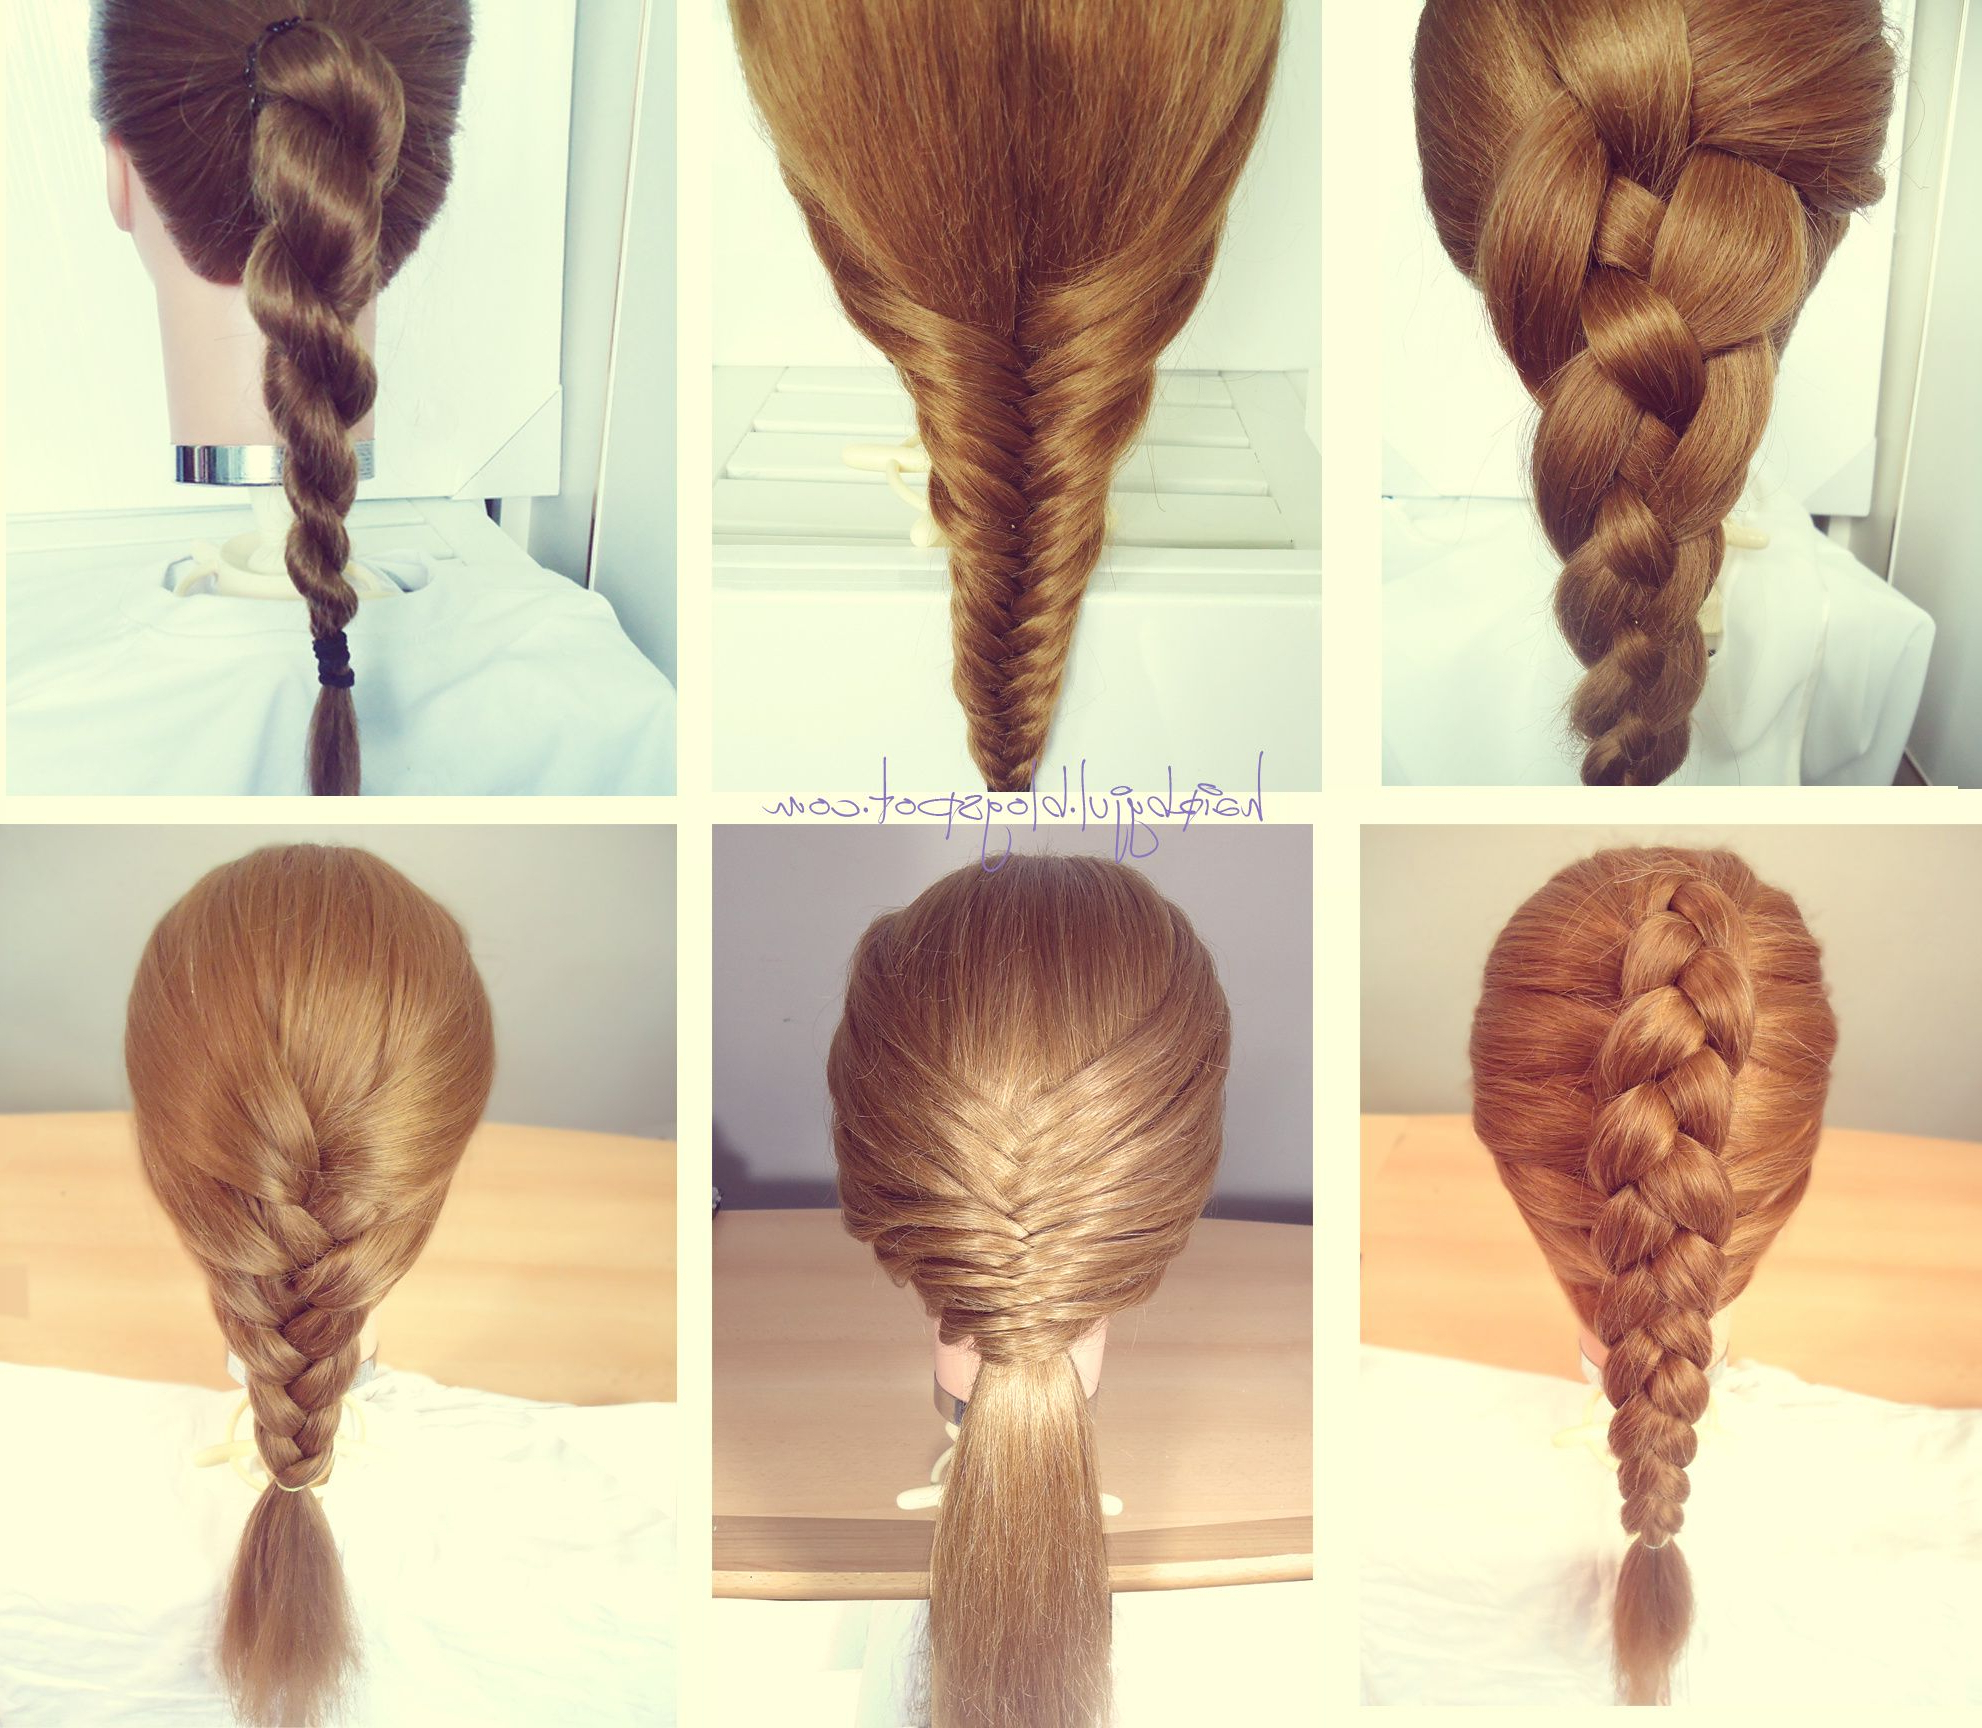 Newest Rope And Fishtail Braid Hairstyles Throughout Braid Hairstyles, Dutch Braid, French Braid, Rope Braid (View 13 of 20)